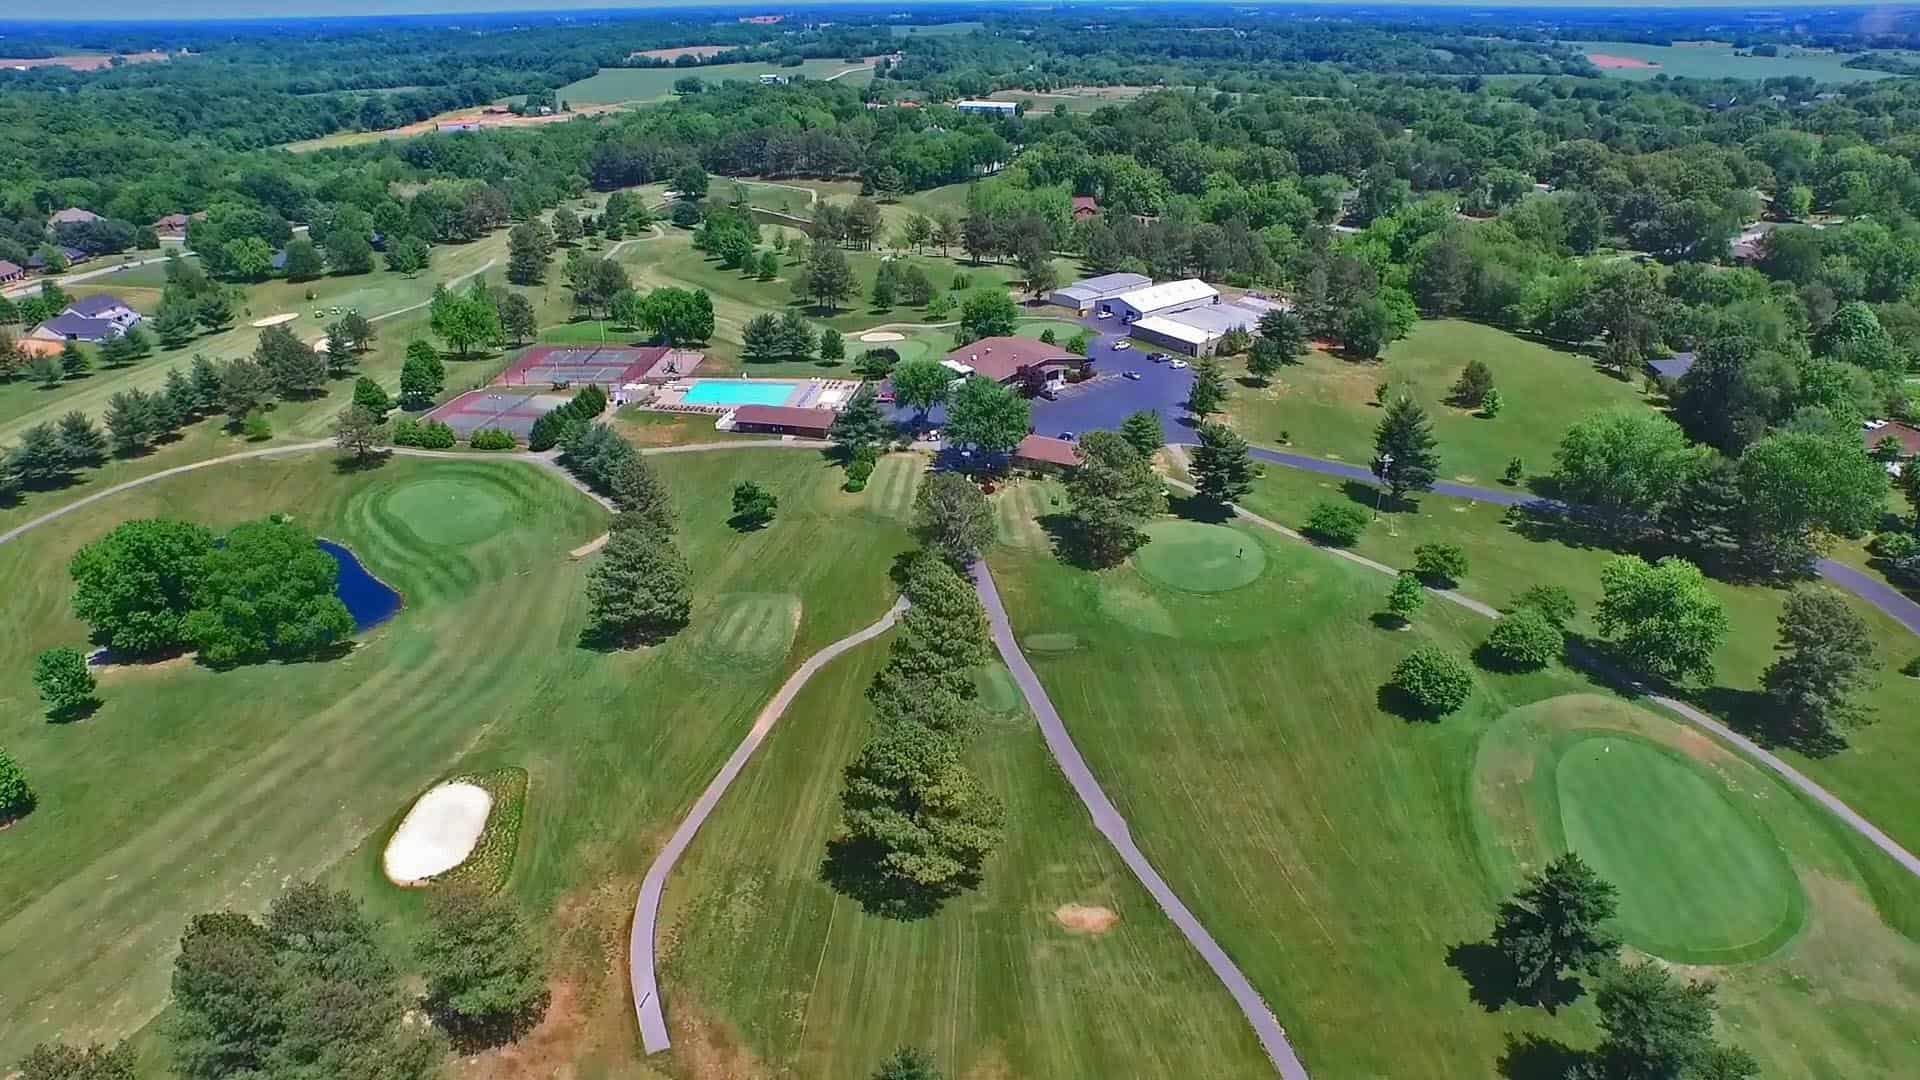 Golf Resort Aerial Photograhy & Video Drone Marketing